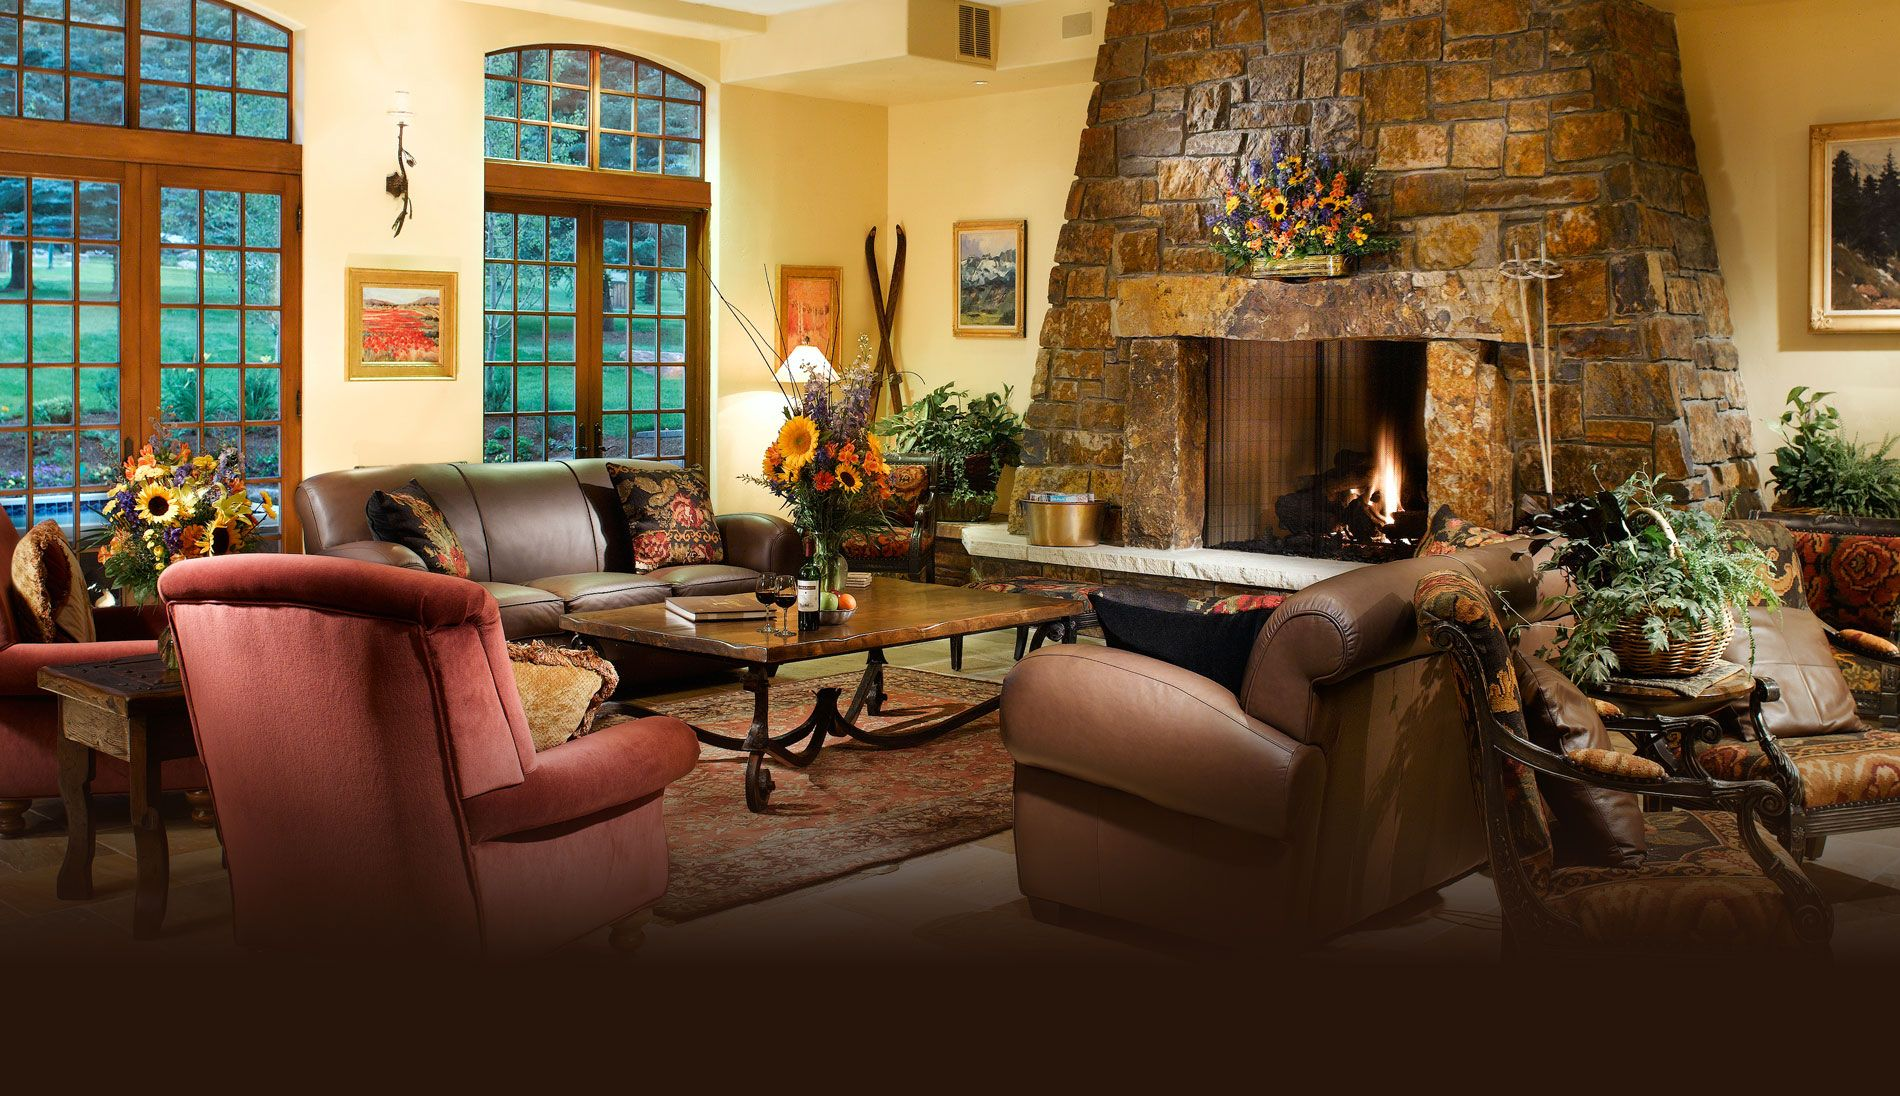 Tivoli Lodge Vail Vail Hotel Lodging Luxury Ski Lodging At Tivoli Lodge In Vail